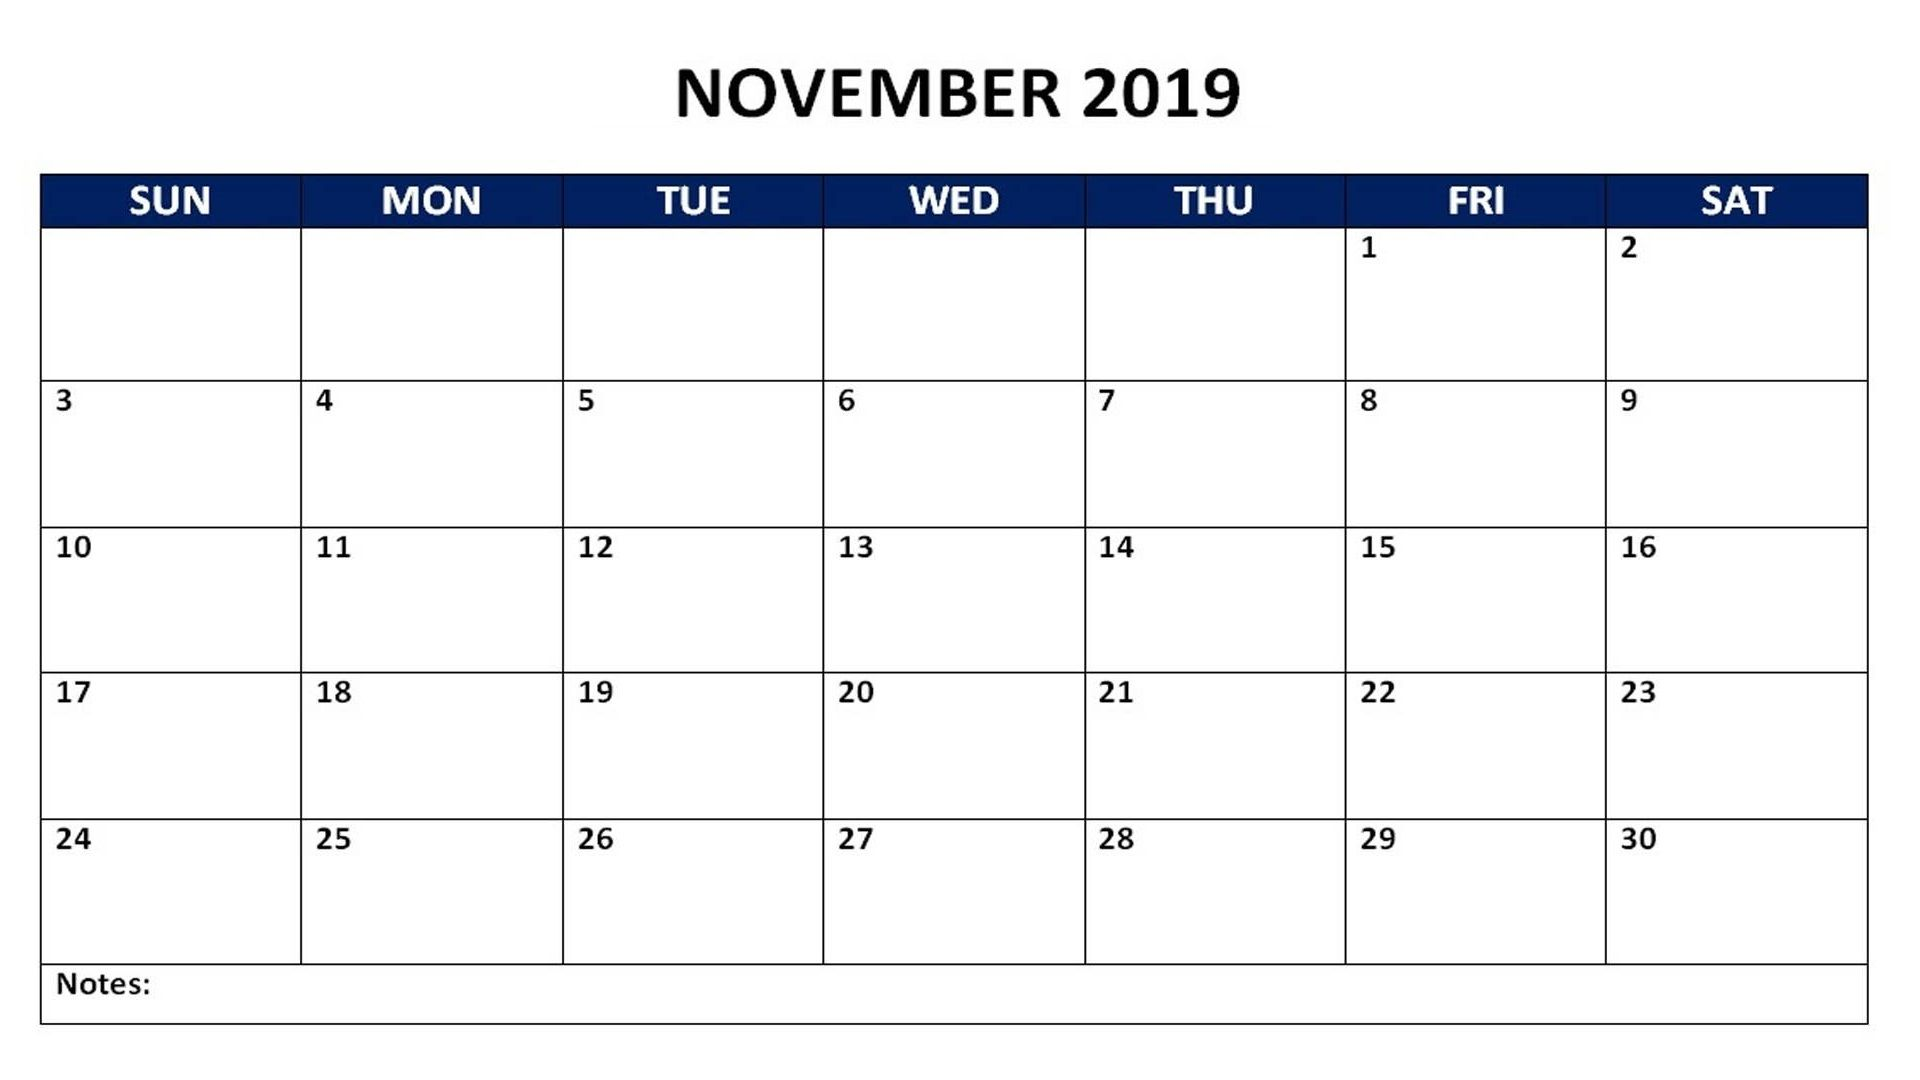 November Monthly Calendar Calendars Jpg 1920x1080 Weekly Memo 2019 Picturesque